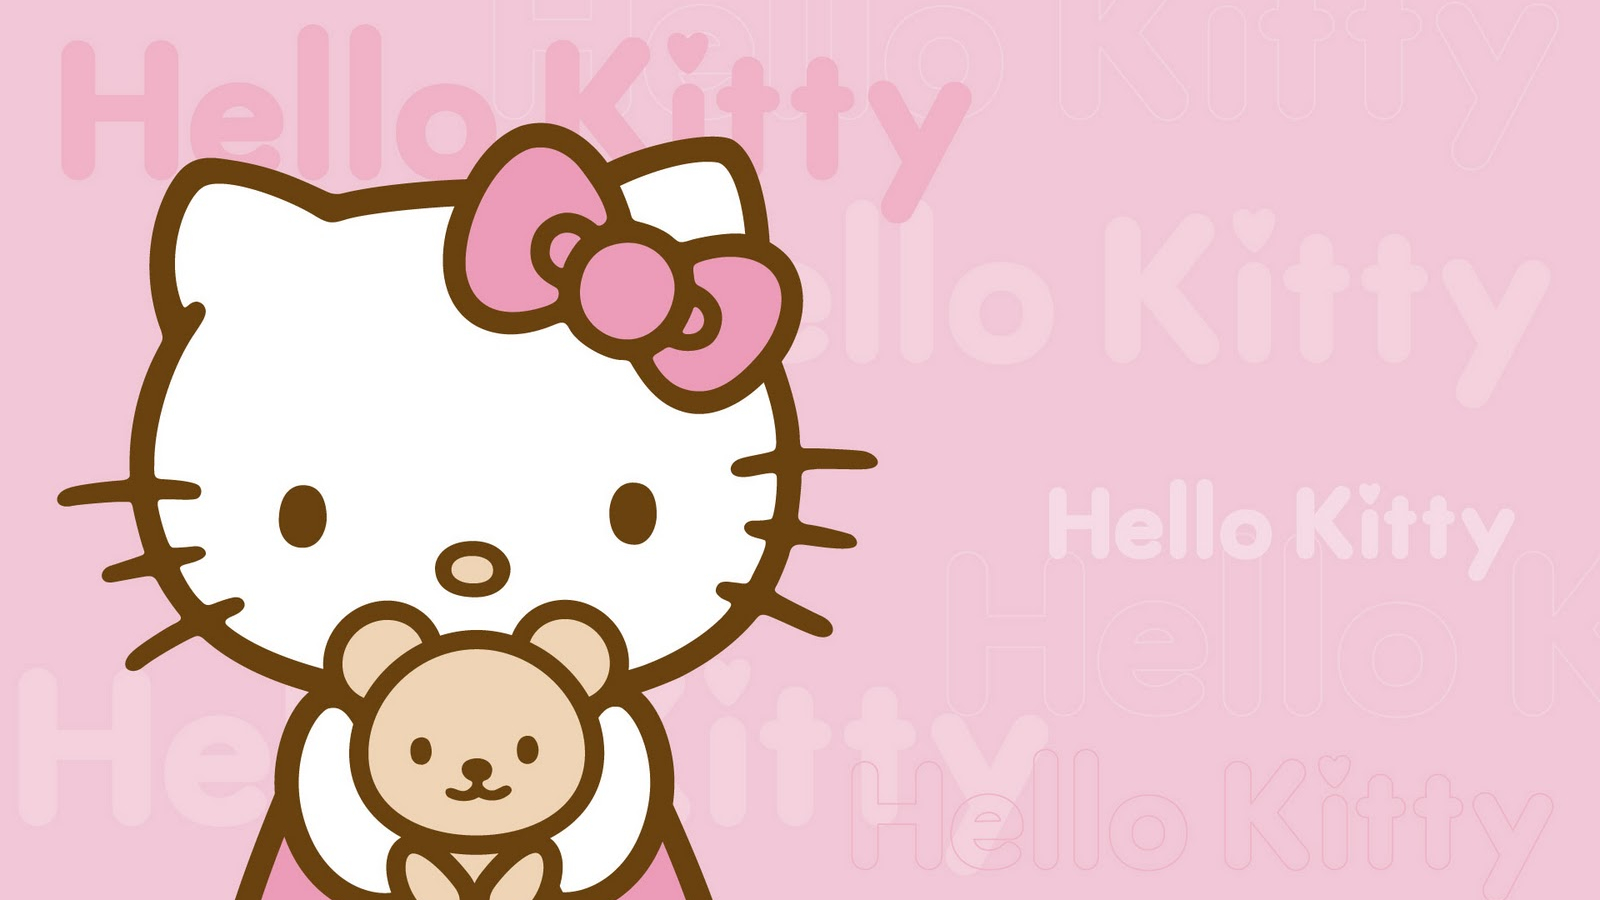 Free Wallpaper Hello Kitty Imut Dan Lucu [1600x1000